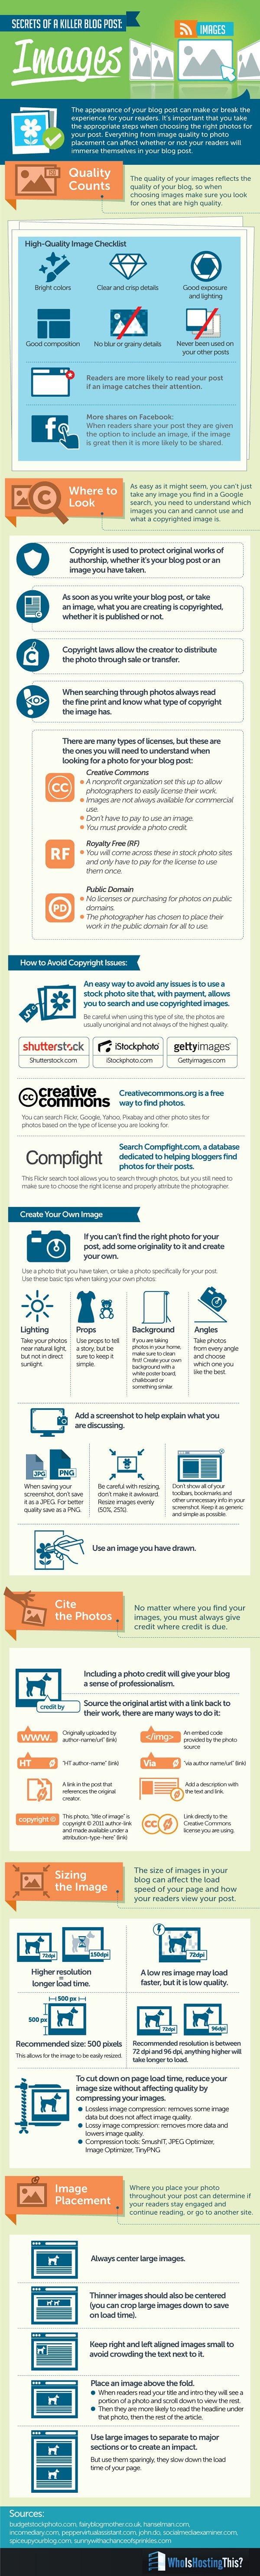 how-to-choose-blog-post-images.jpg